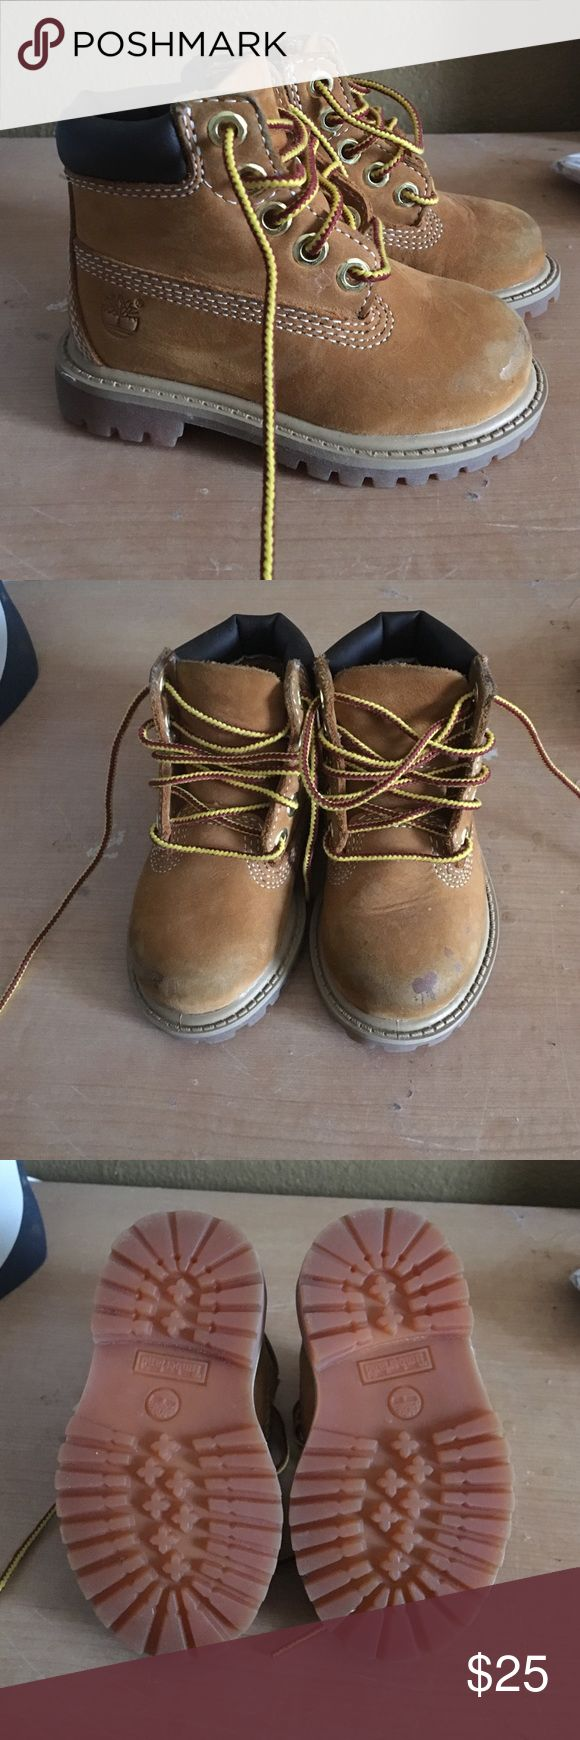 Toddler Boy's Timberland Boots Good condition. Scuffs on front of boots. Timberland Shoes Winter & Rain Boots